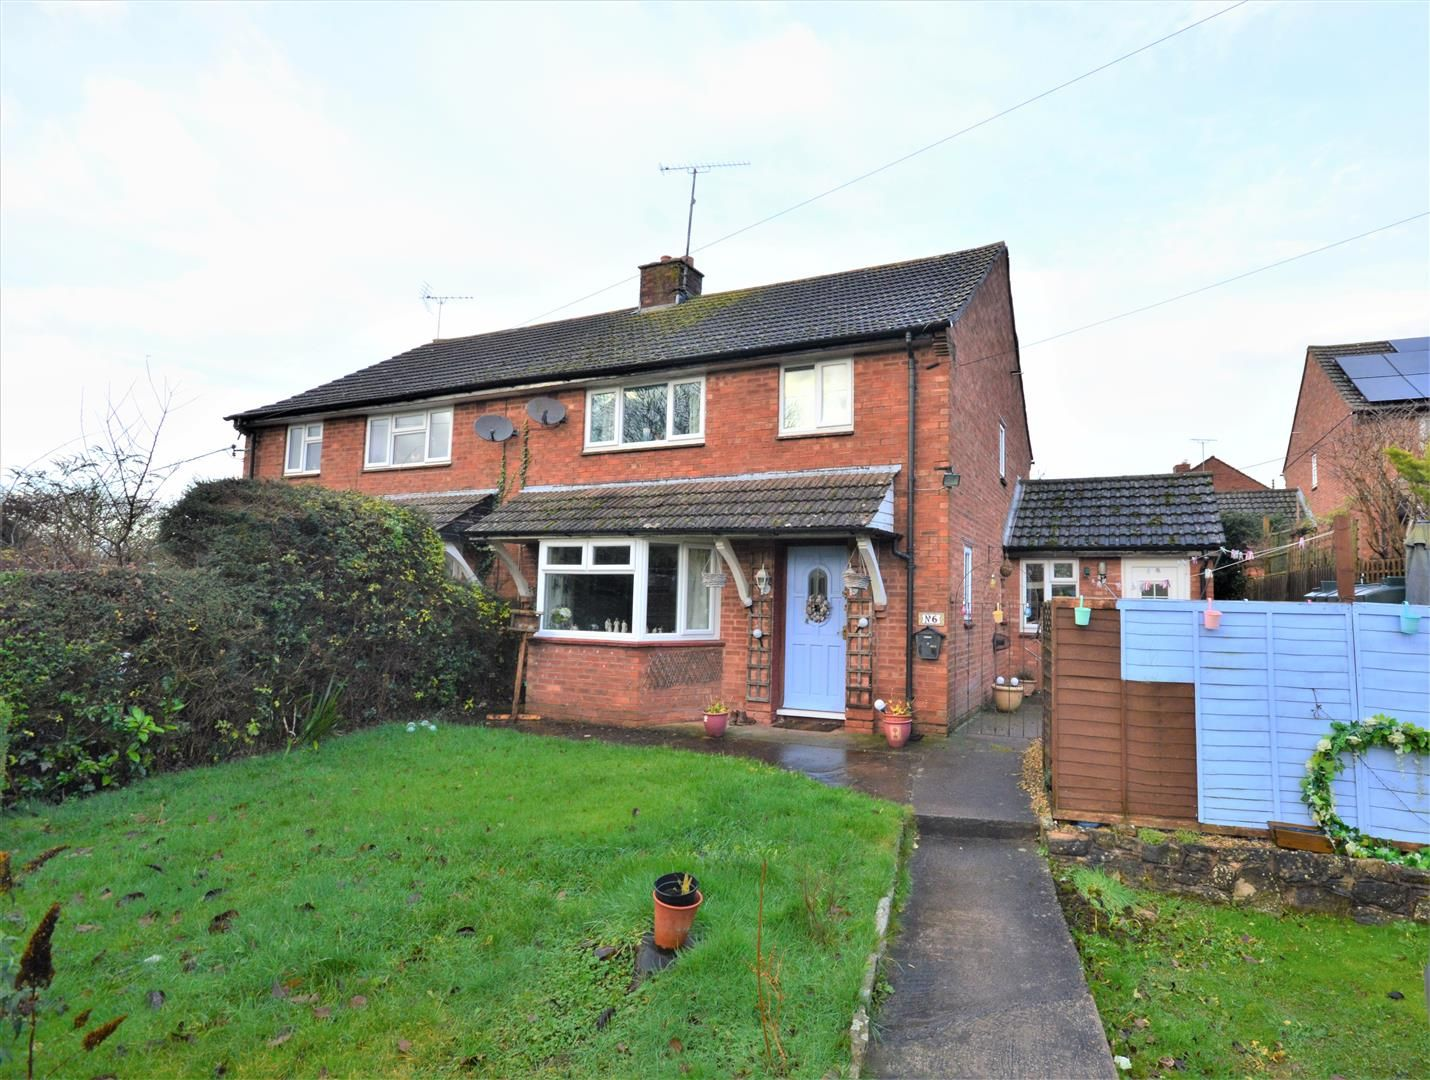 3 bed semi-detached for sale in Much Birch  - Property Image 13